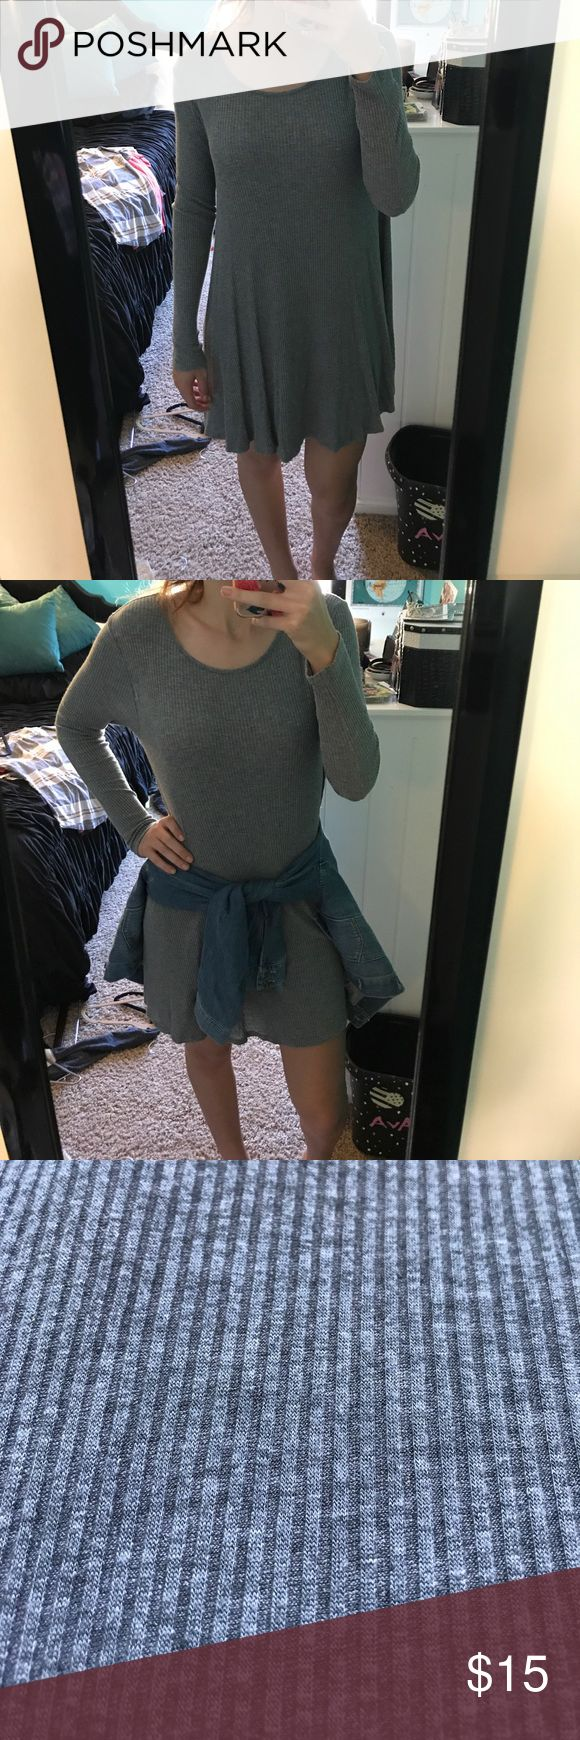 Long Sleeve Tshirt Dress Cute and comfy long sleeve dress. Perfect condition. Style with something (like a jean jacket!) tied around waist for accessorizing. Dresses Long Sleeve